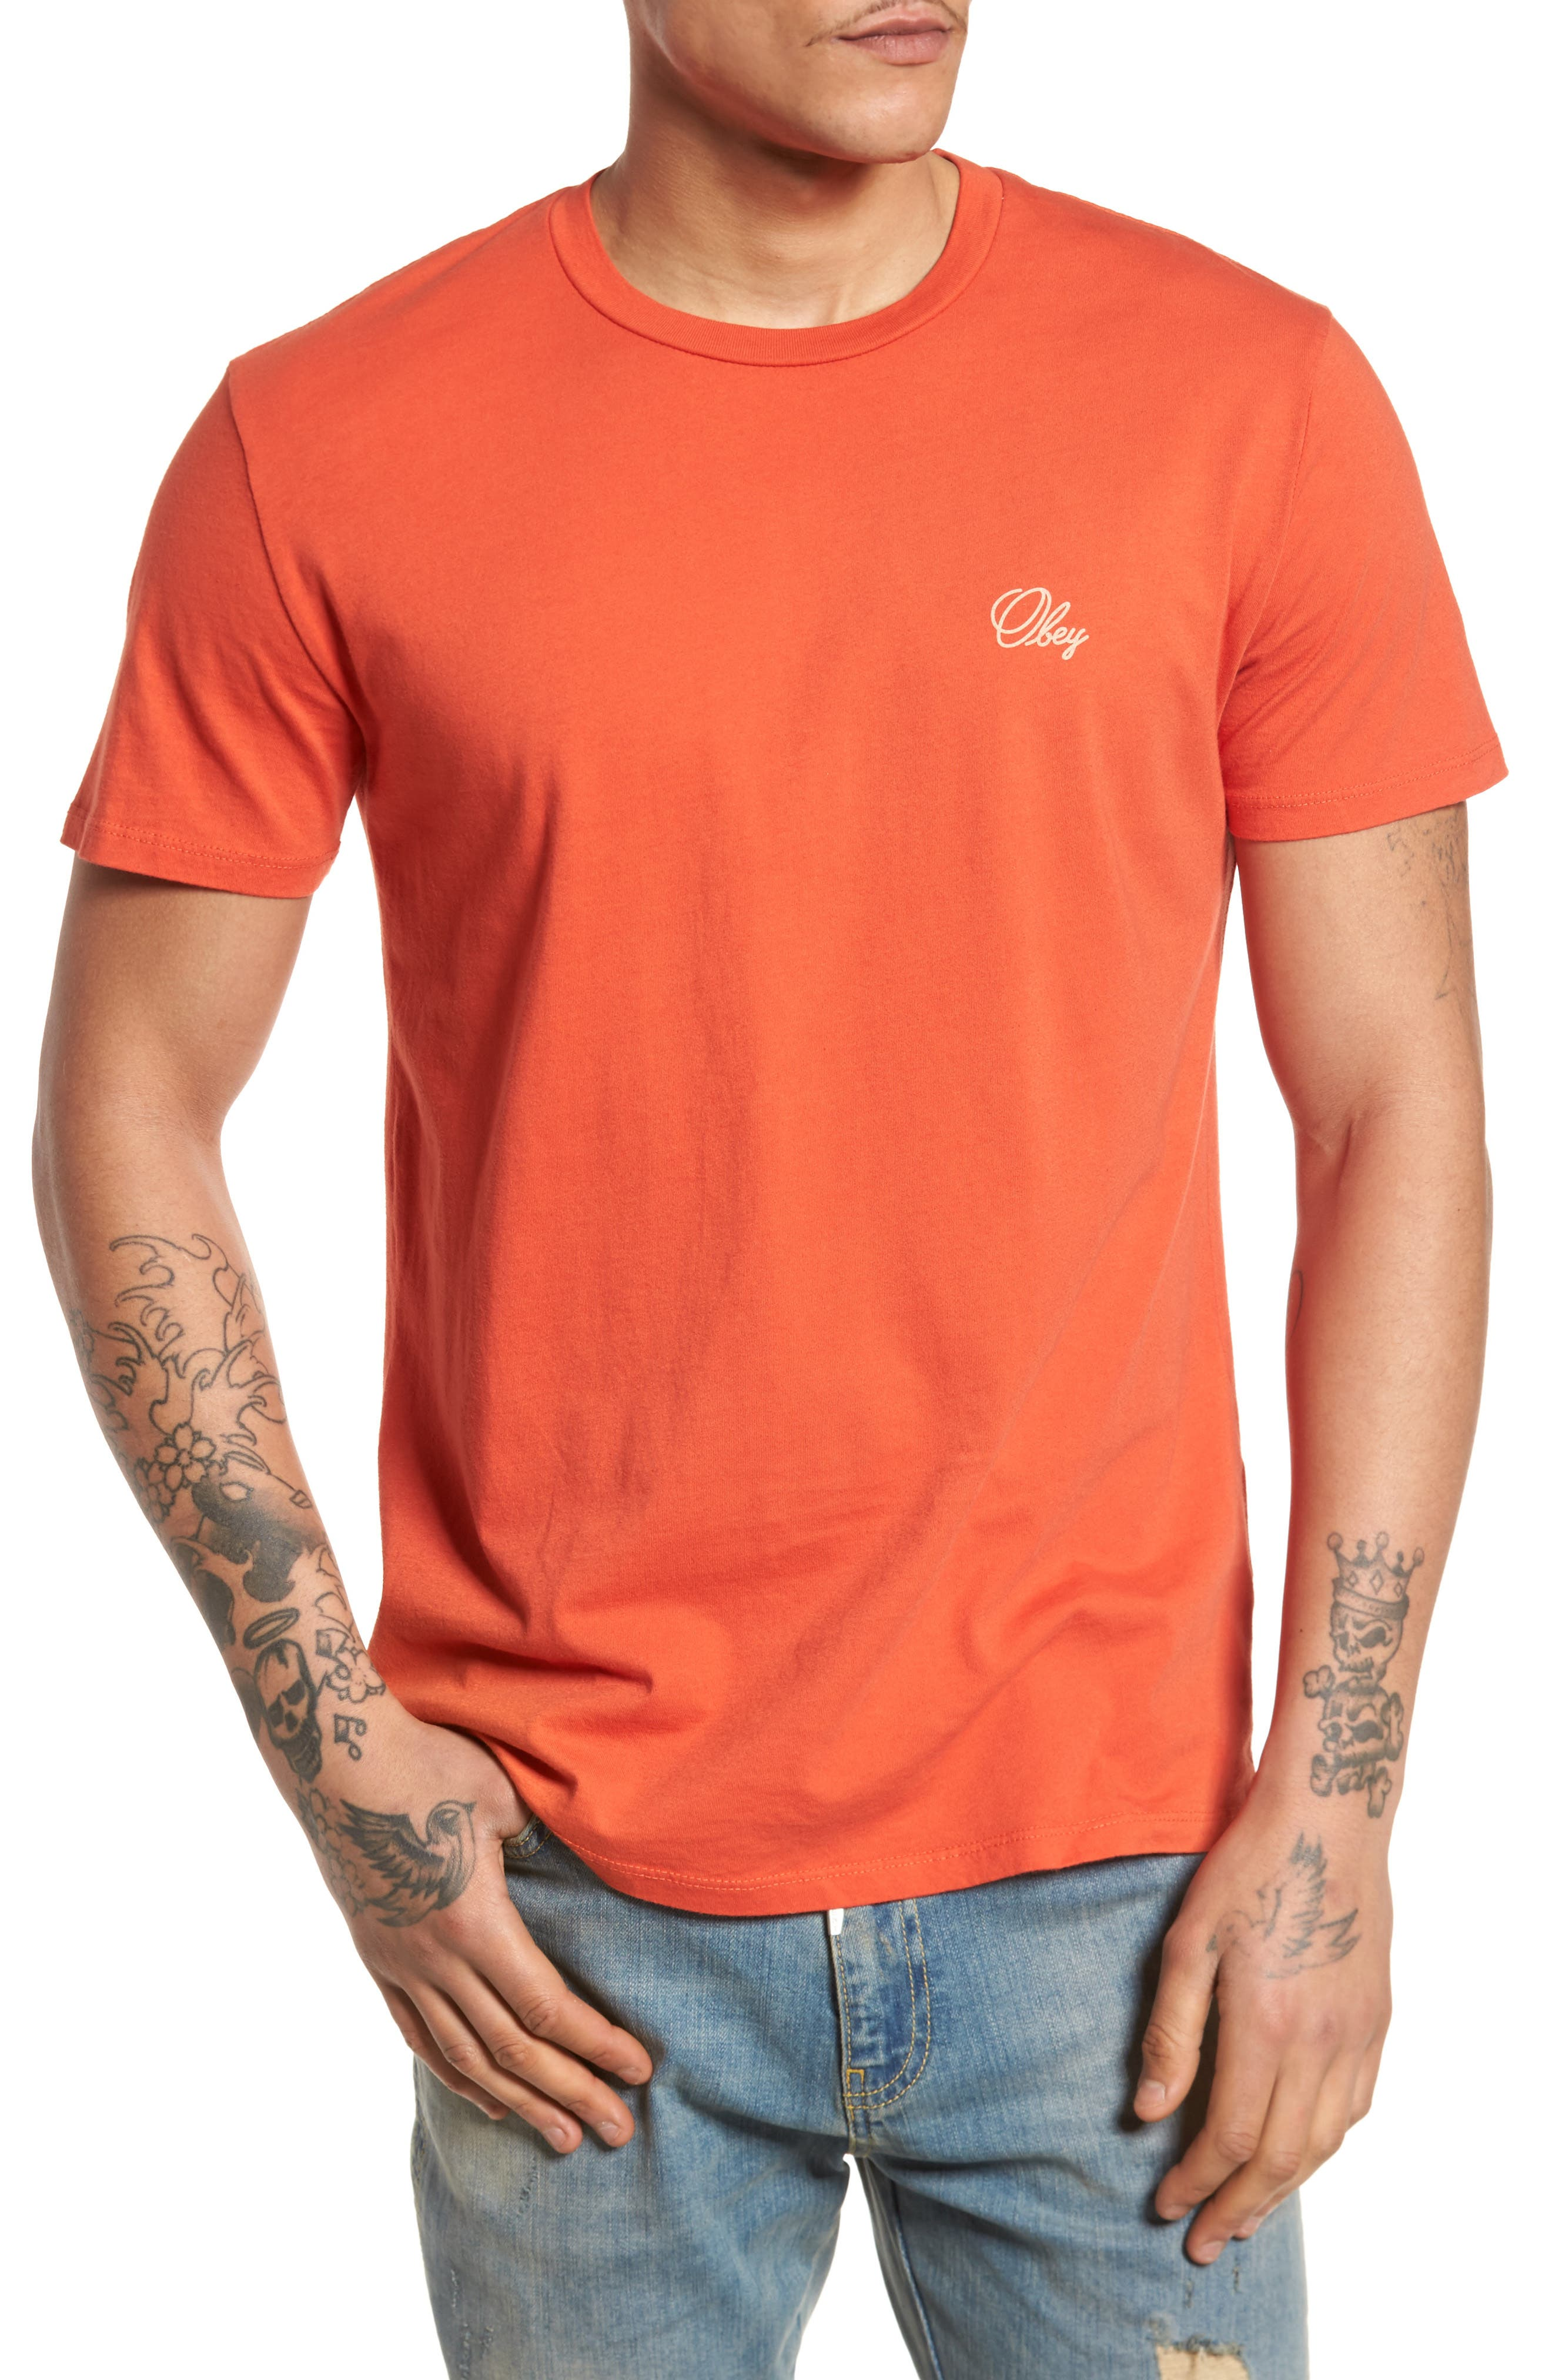 Alternate Image 1 Selected - Obey Old Script Superior T-Shirt